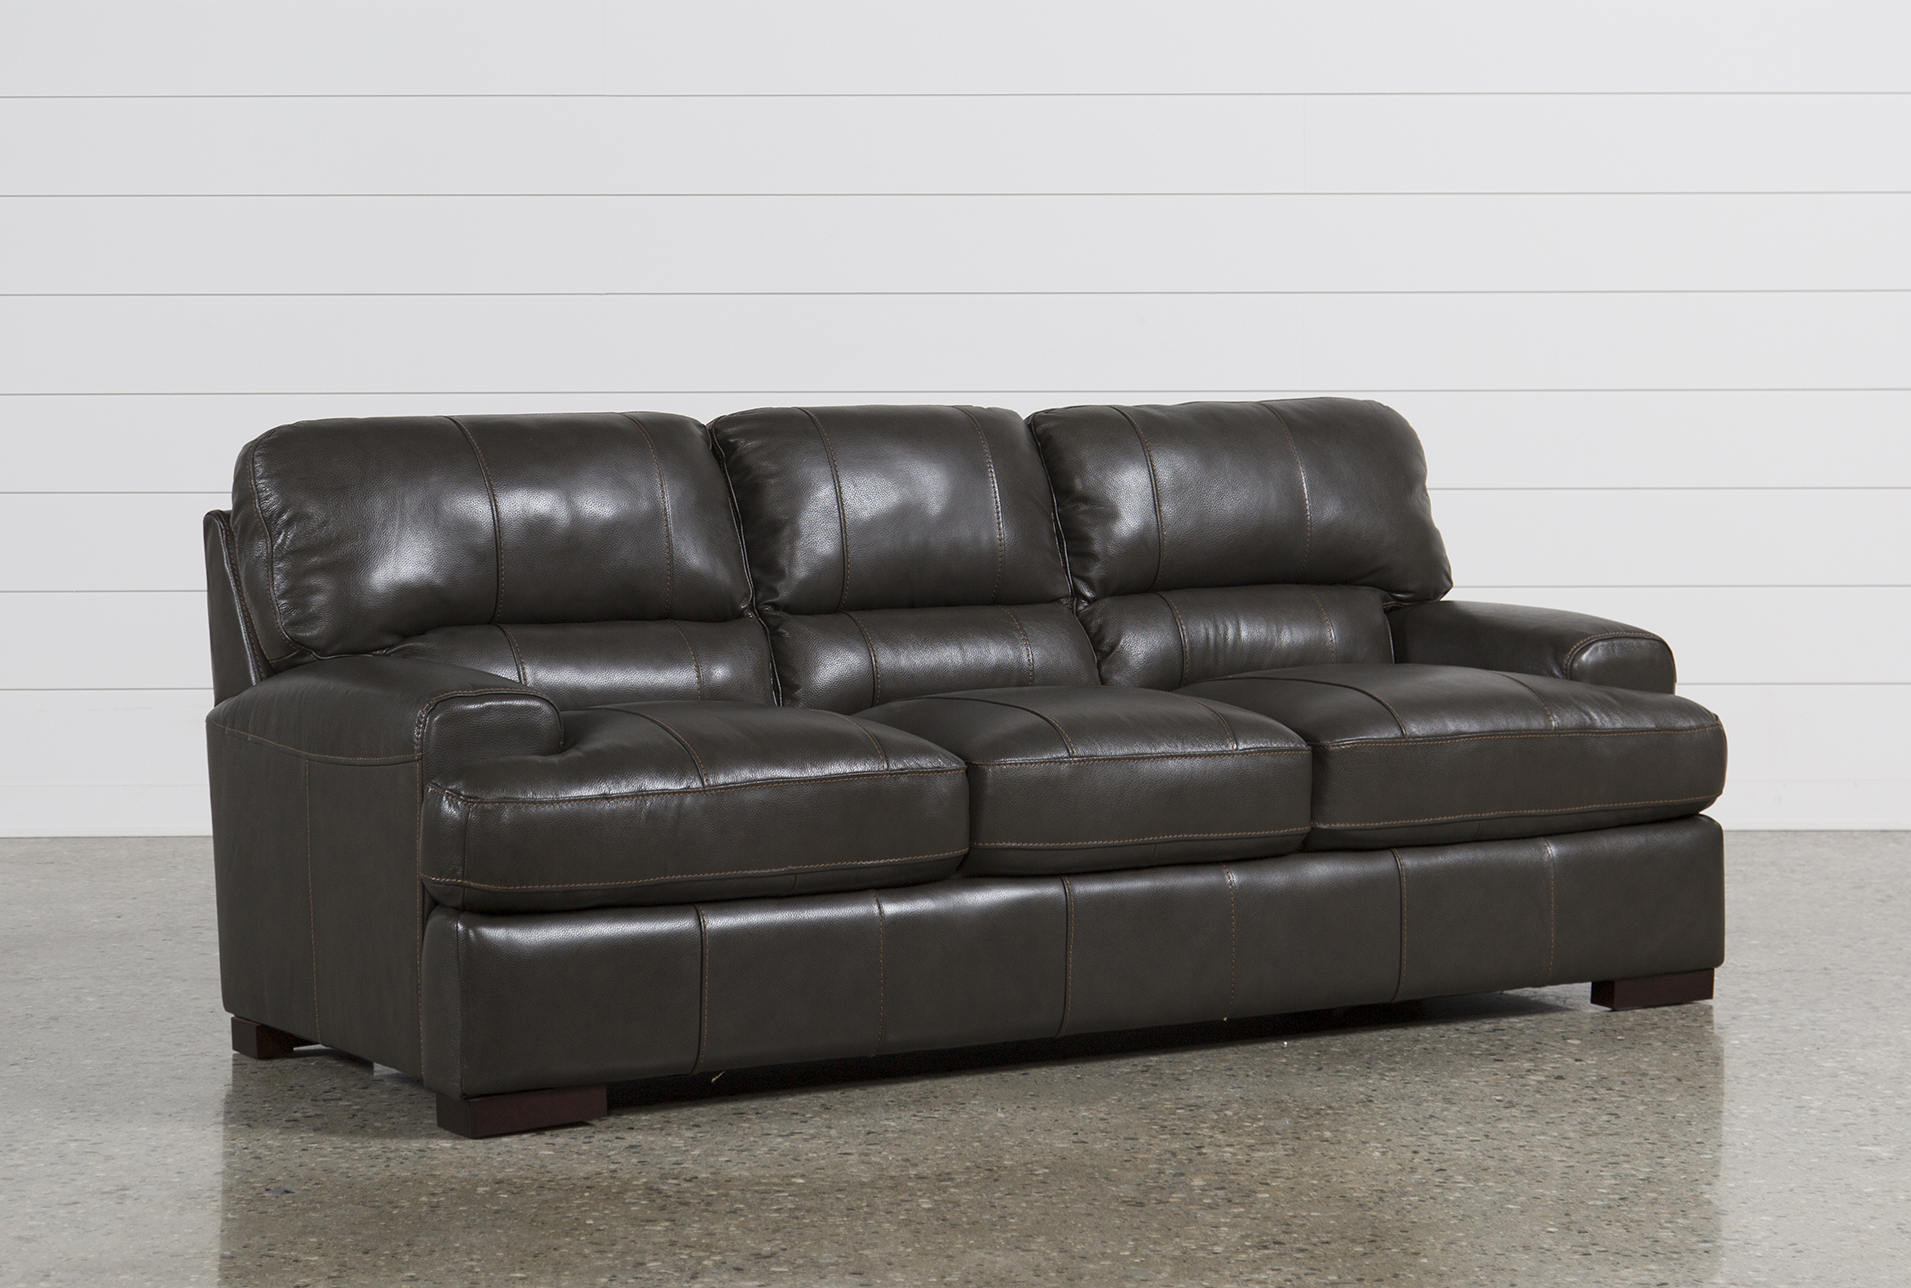 Gentil Display Product Reviews For ANDREW LEATHER SOFA